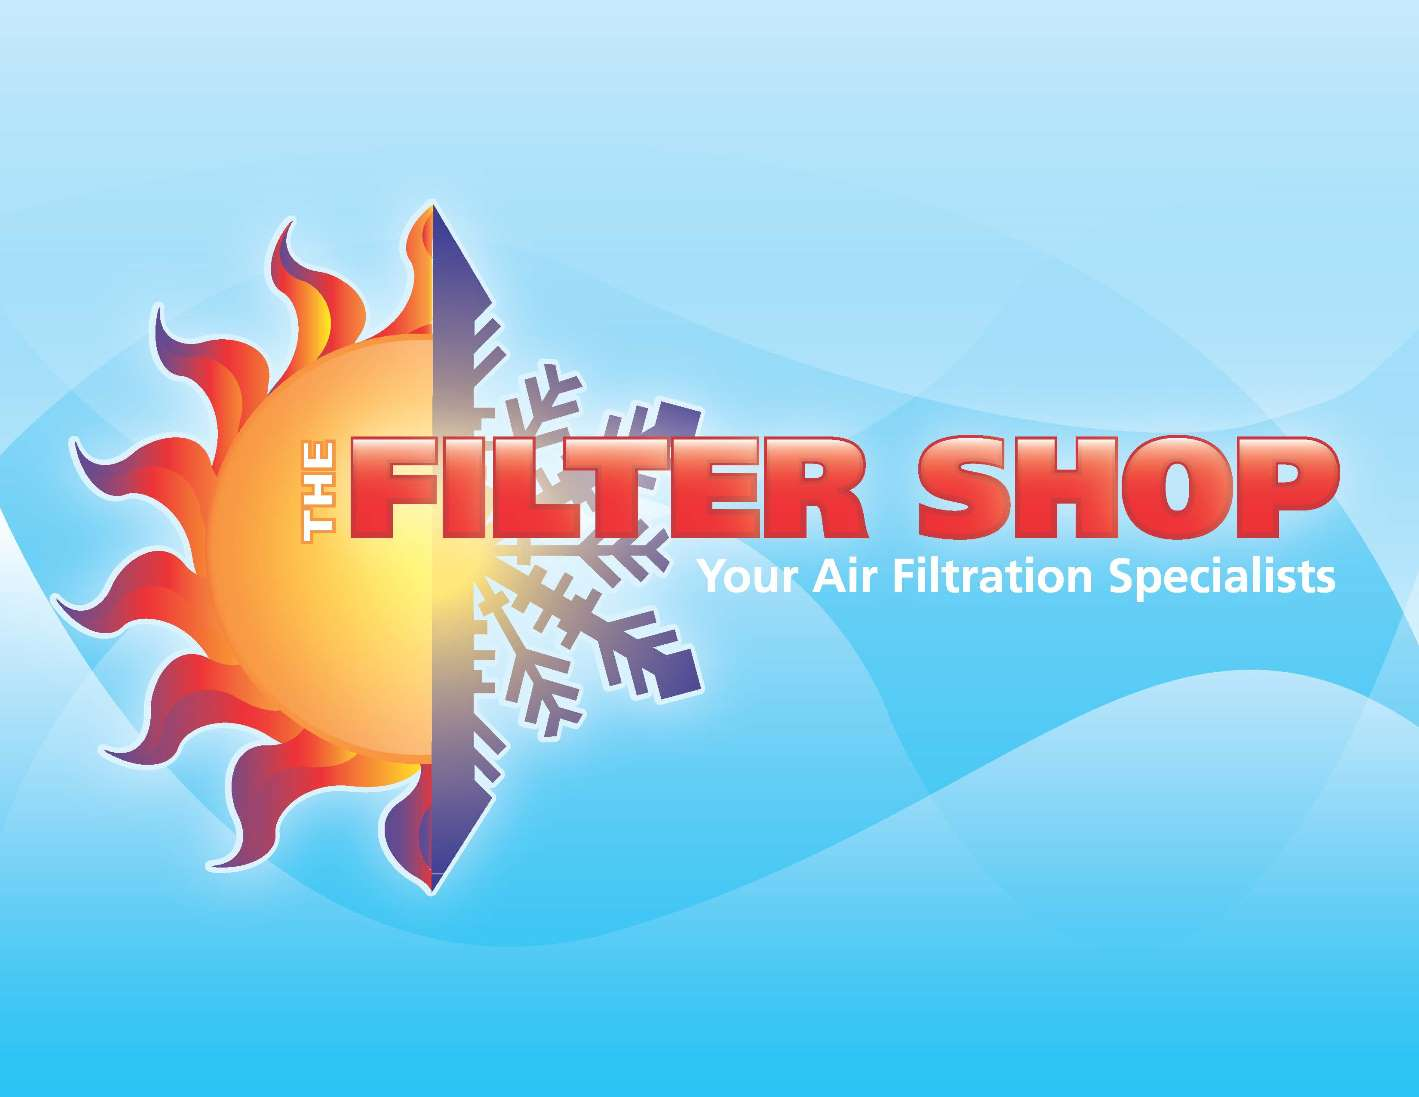 The Filter Shop